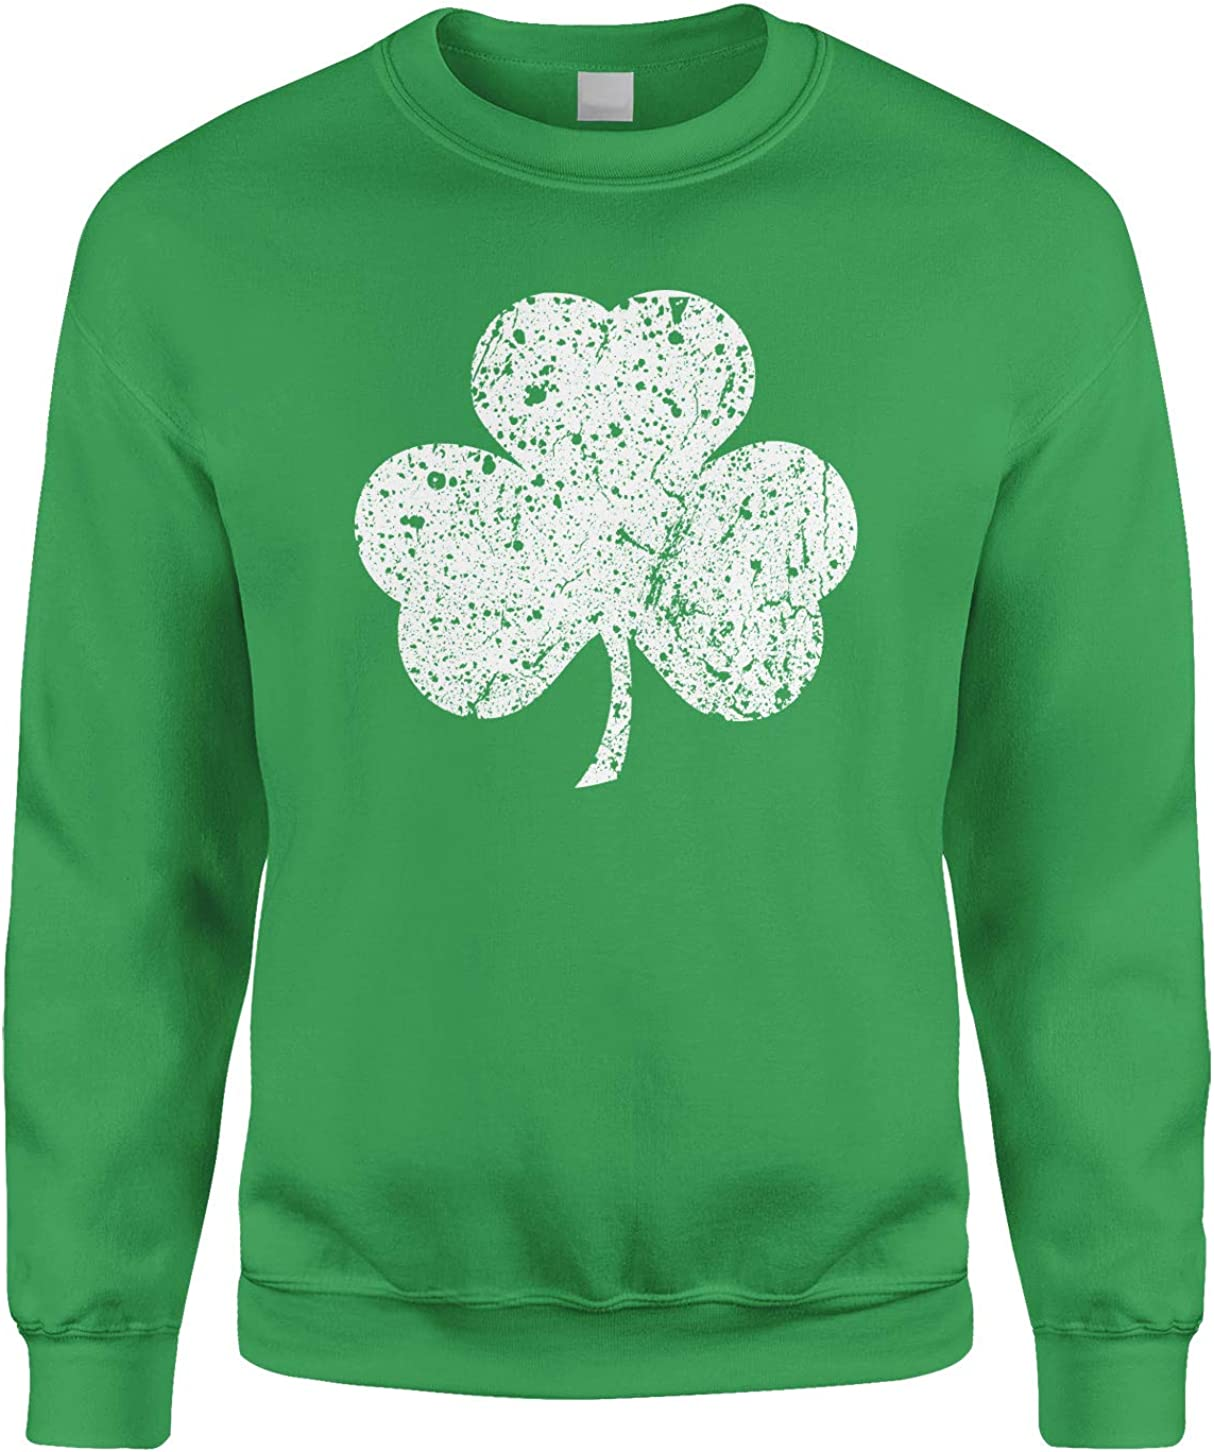 B077XBCPG1 White Three Leaf Clover St Patrick's Day Crewneck Sweatshirt 71xDxy3aIcL